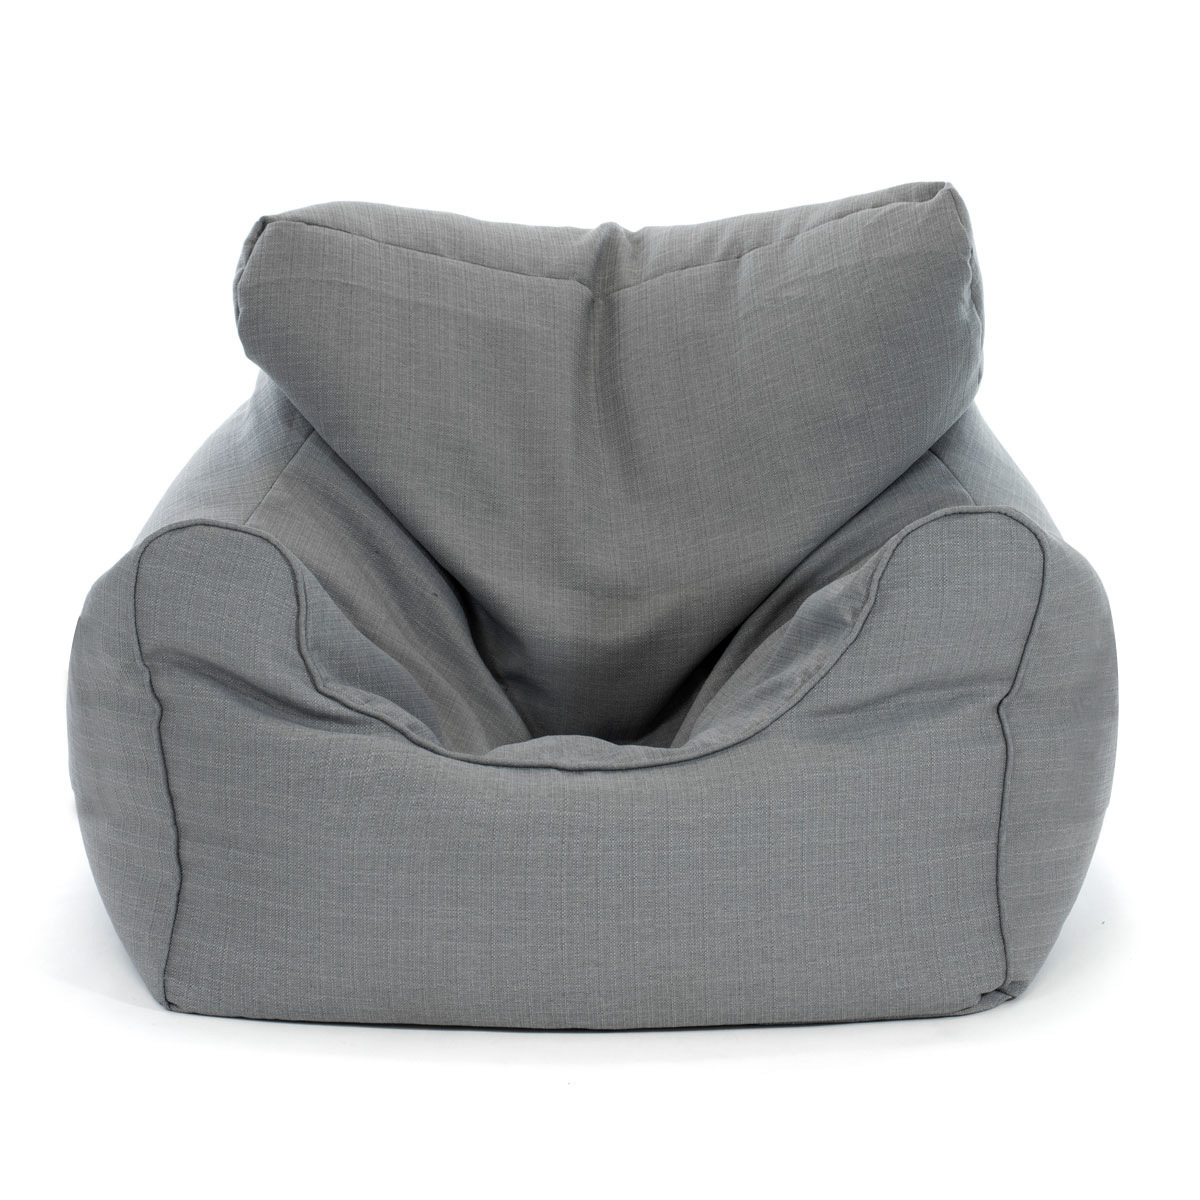 Beanbag Chair Extra Large Grey Bean Bag Chair Kmart